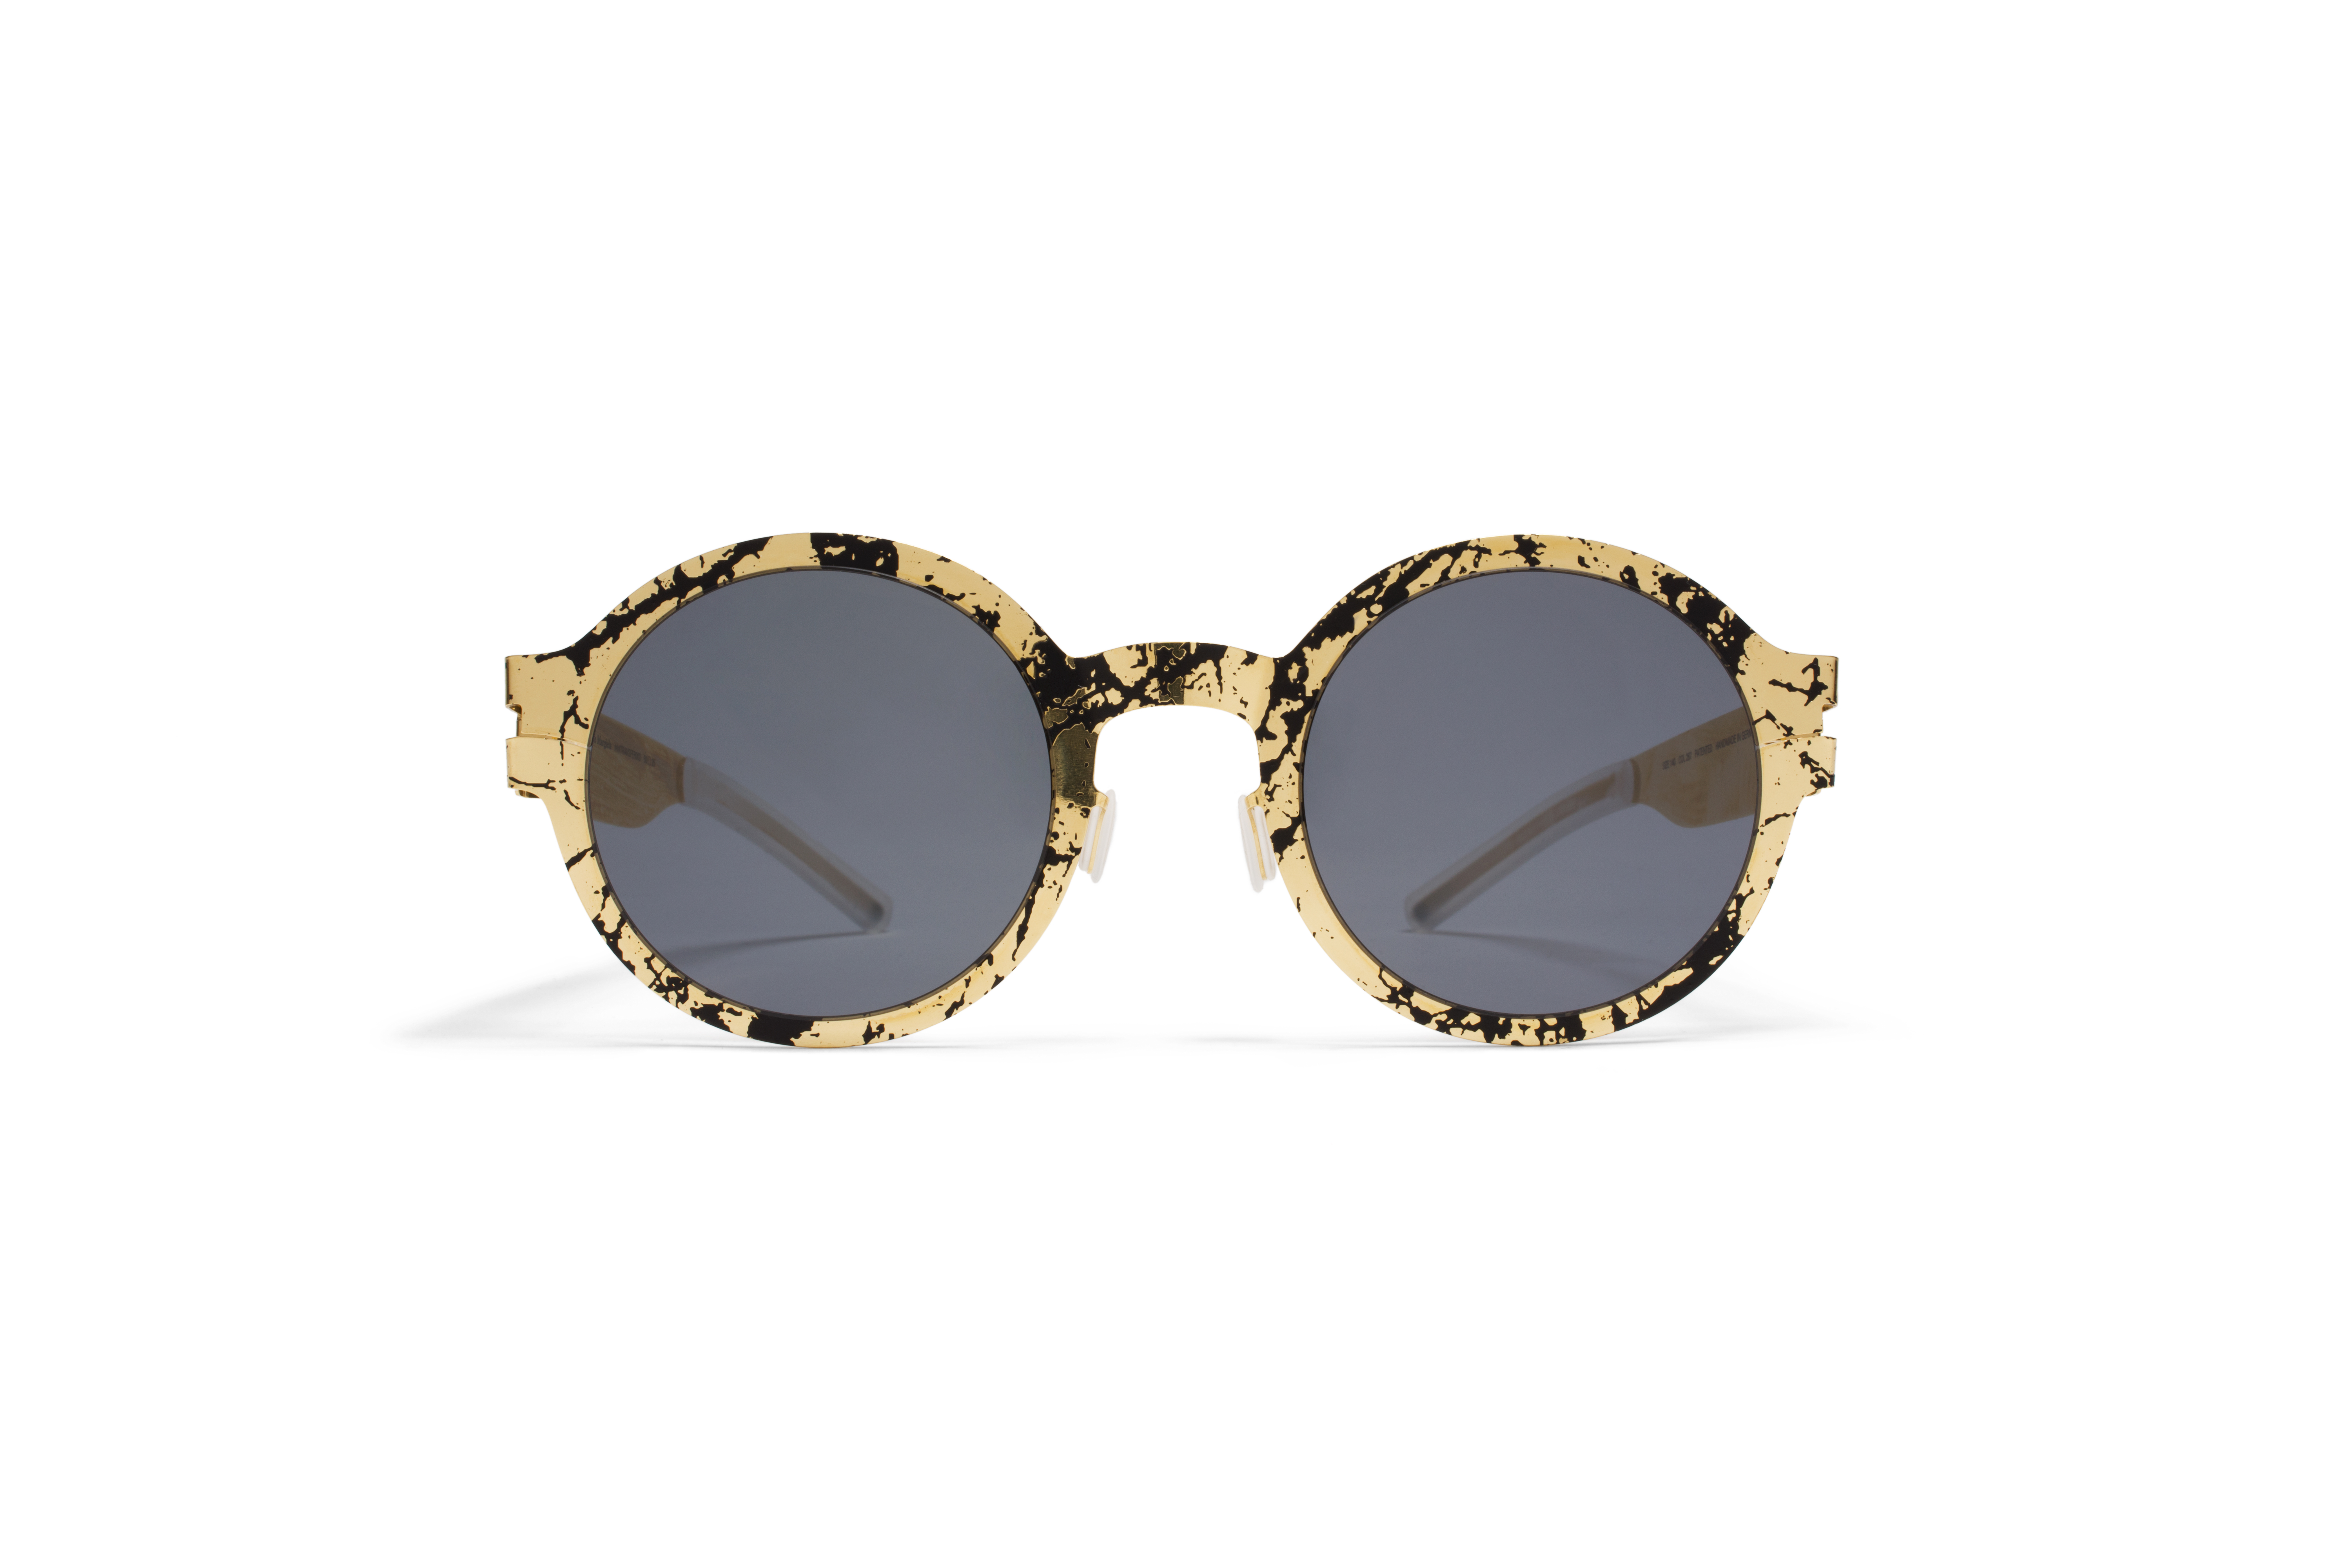 MYKITA Mm Sun Mmtransfer003 Gold Black Stone Dar58a4539a67ea4